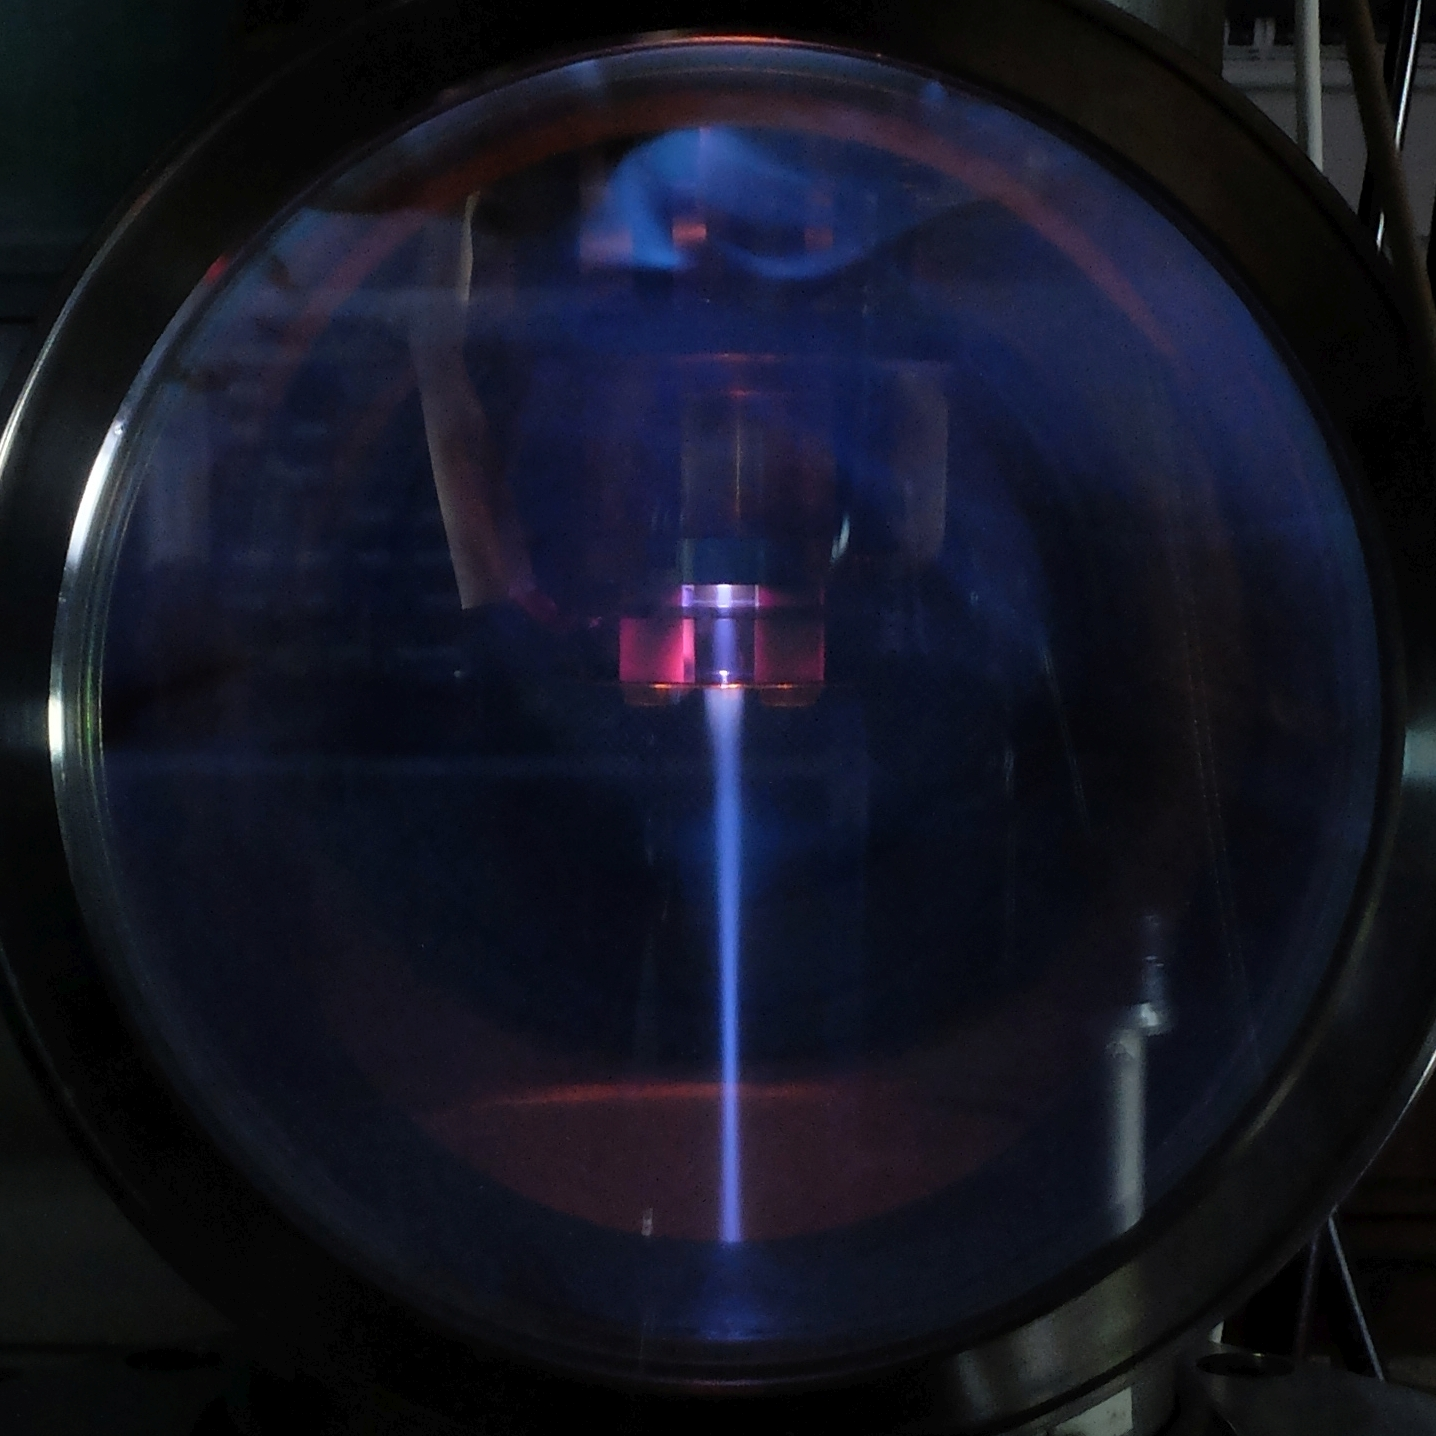 Photo of 100mA electron beam generated by single cavity ECR source